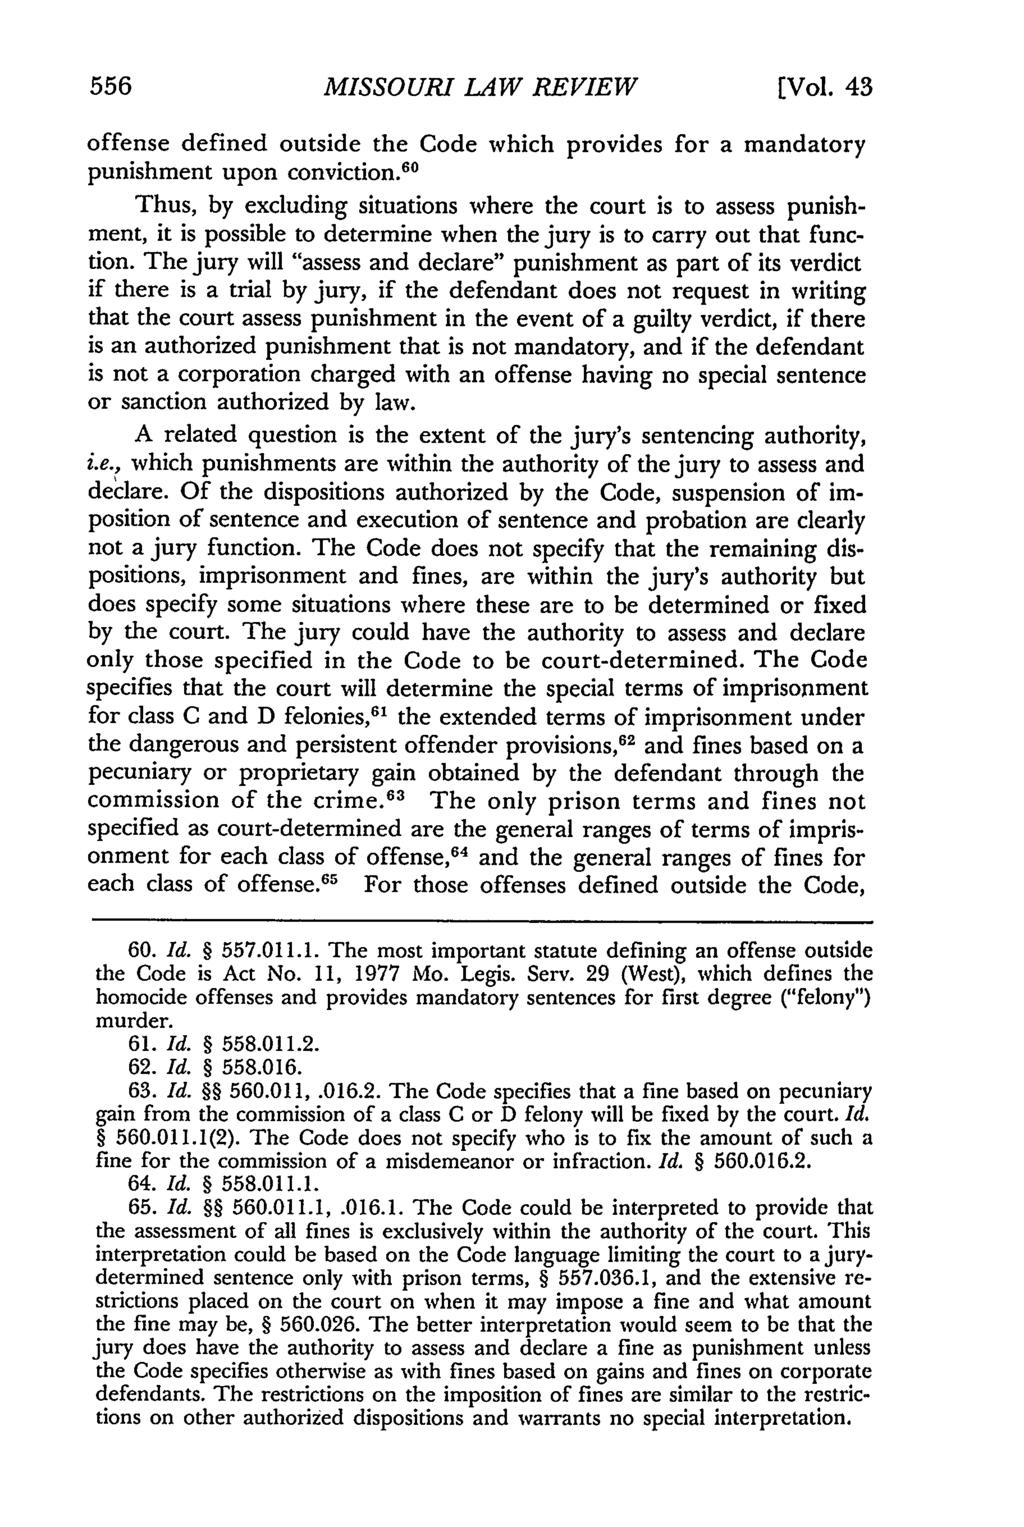 556 Missouri Law Review, Vol. 43, Iss. 3 [1978], Art. 6 MISSOURI LAW REVIEW [Vol. 43 offense defined outside the Code which provides for a mandatory punishment upon conviction.